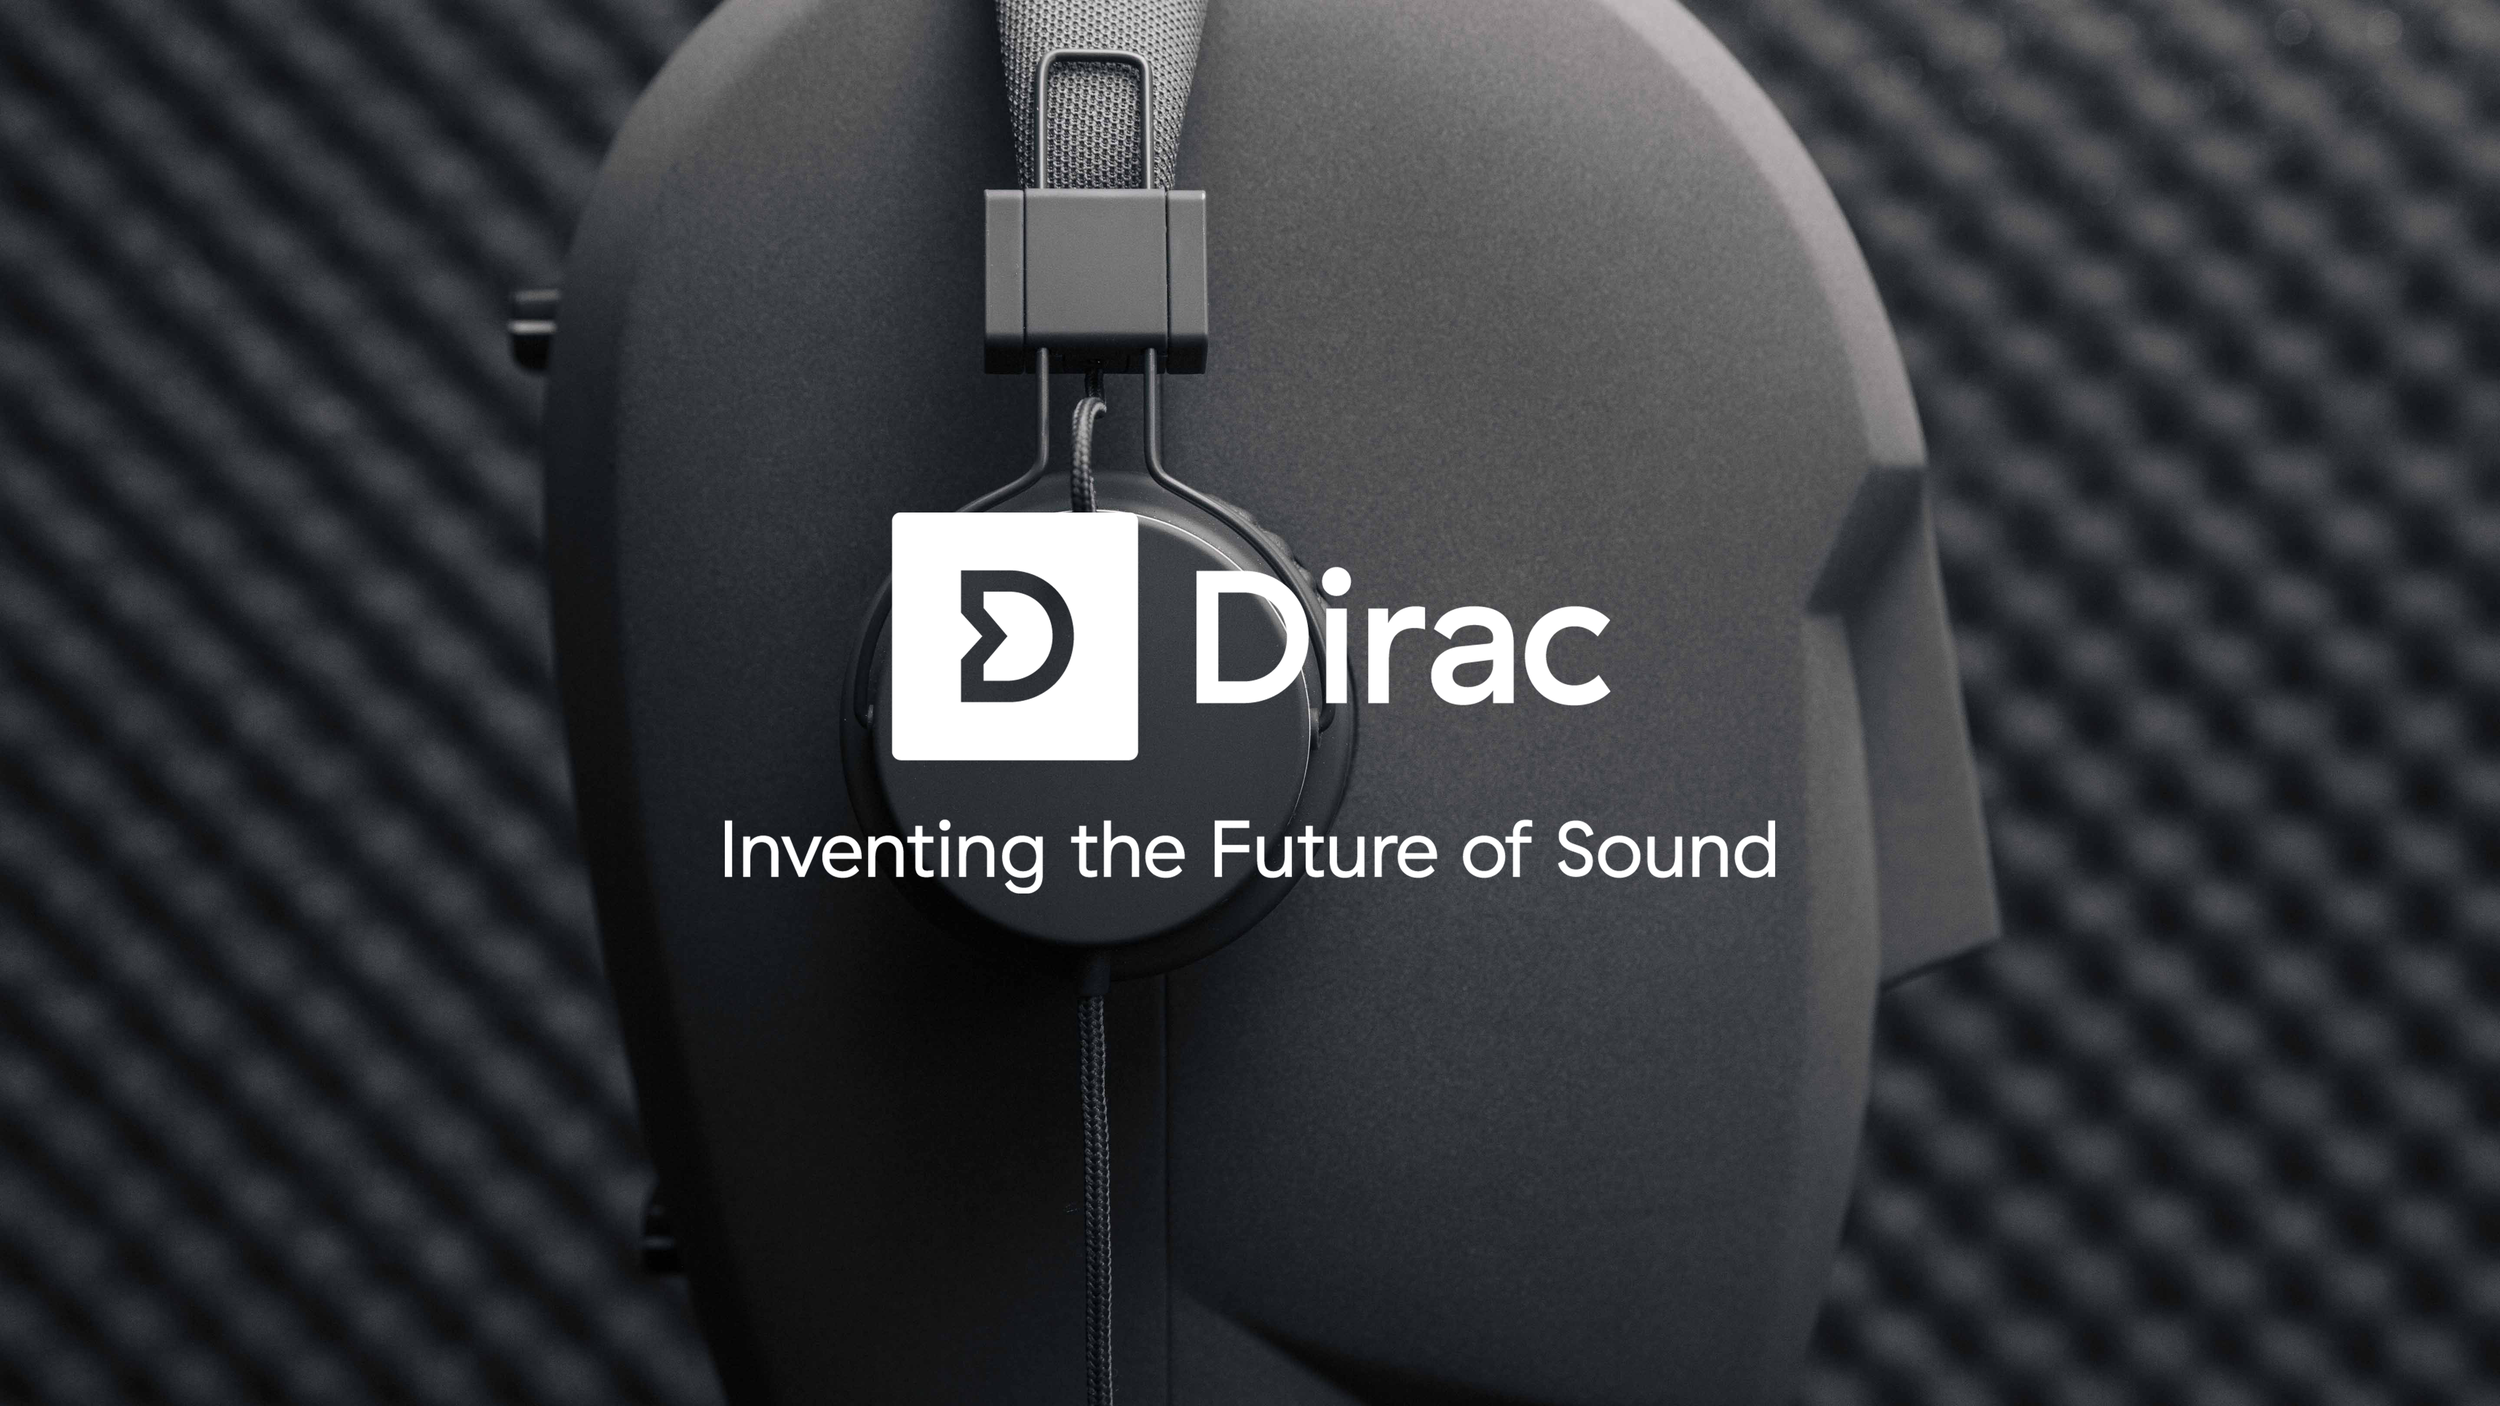 Dirac specializes in Digital Room Correction, Sound Optimization